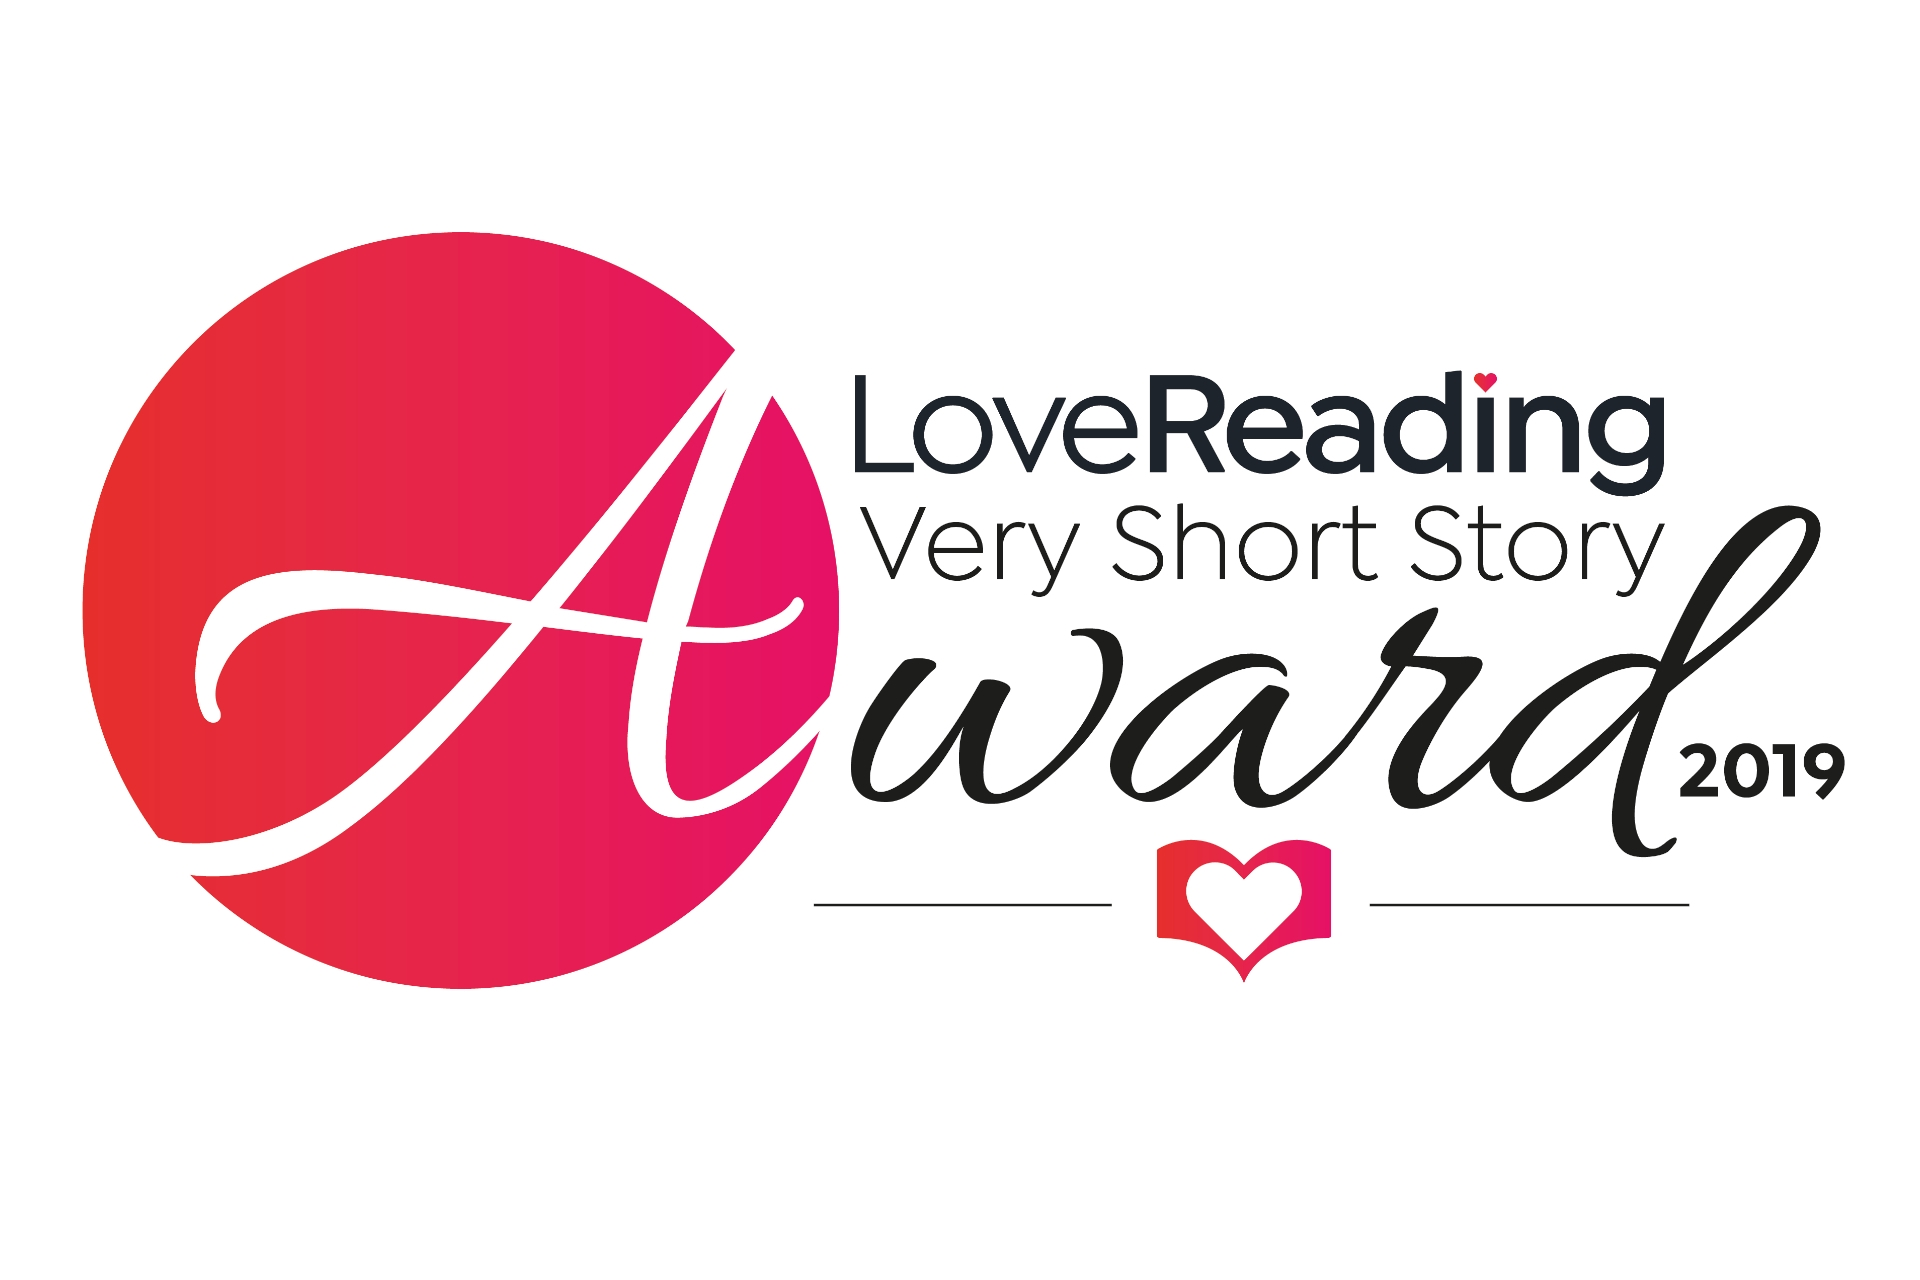 The LoveReading Very Short Story Award Shortlist Announced!